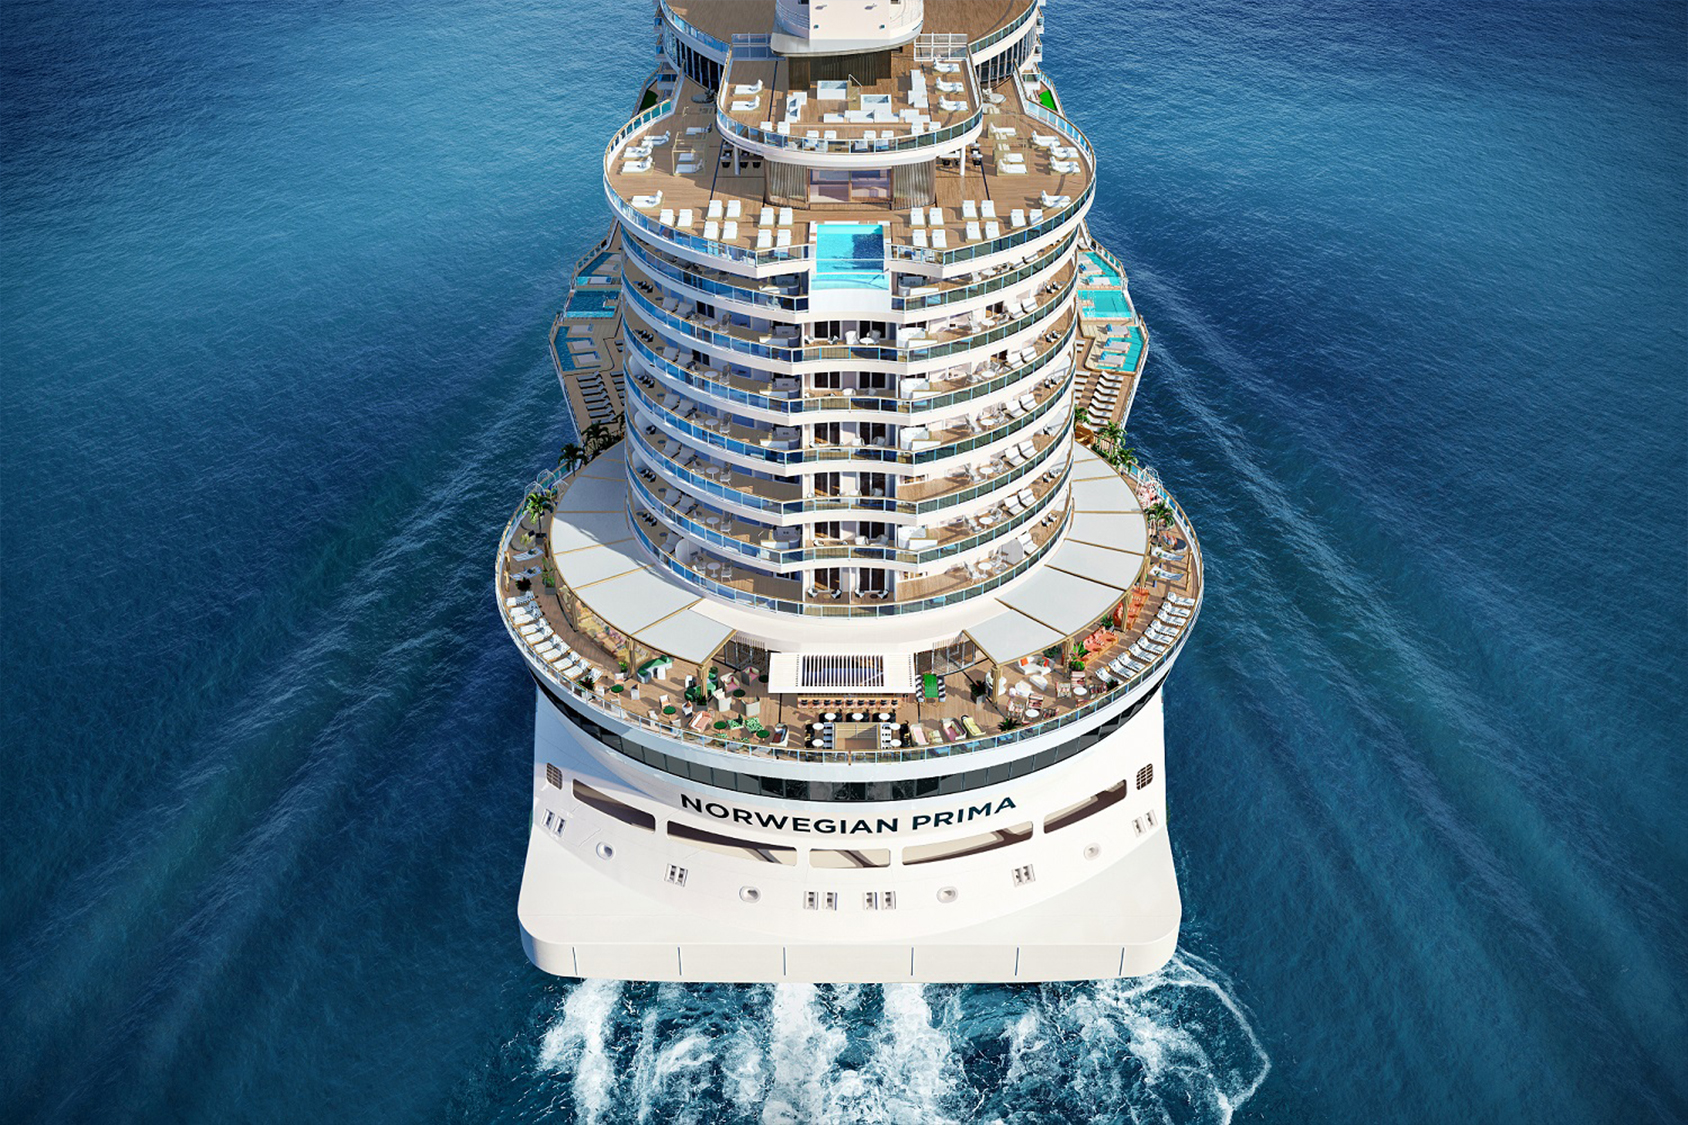 For the first time, the Cruise Line relocated all 107 Haven suites to the aft, providing endless ocean views and even more exclusivity.